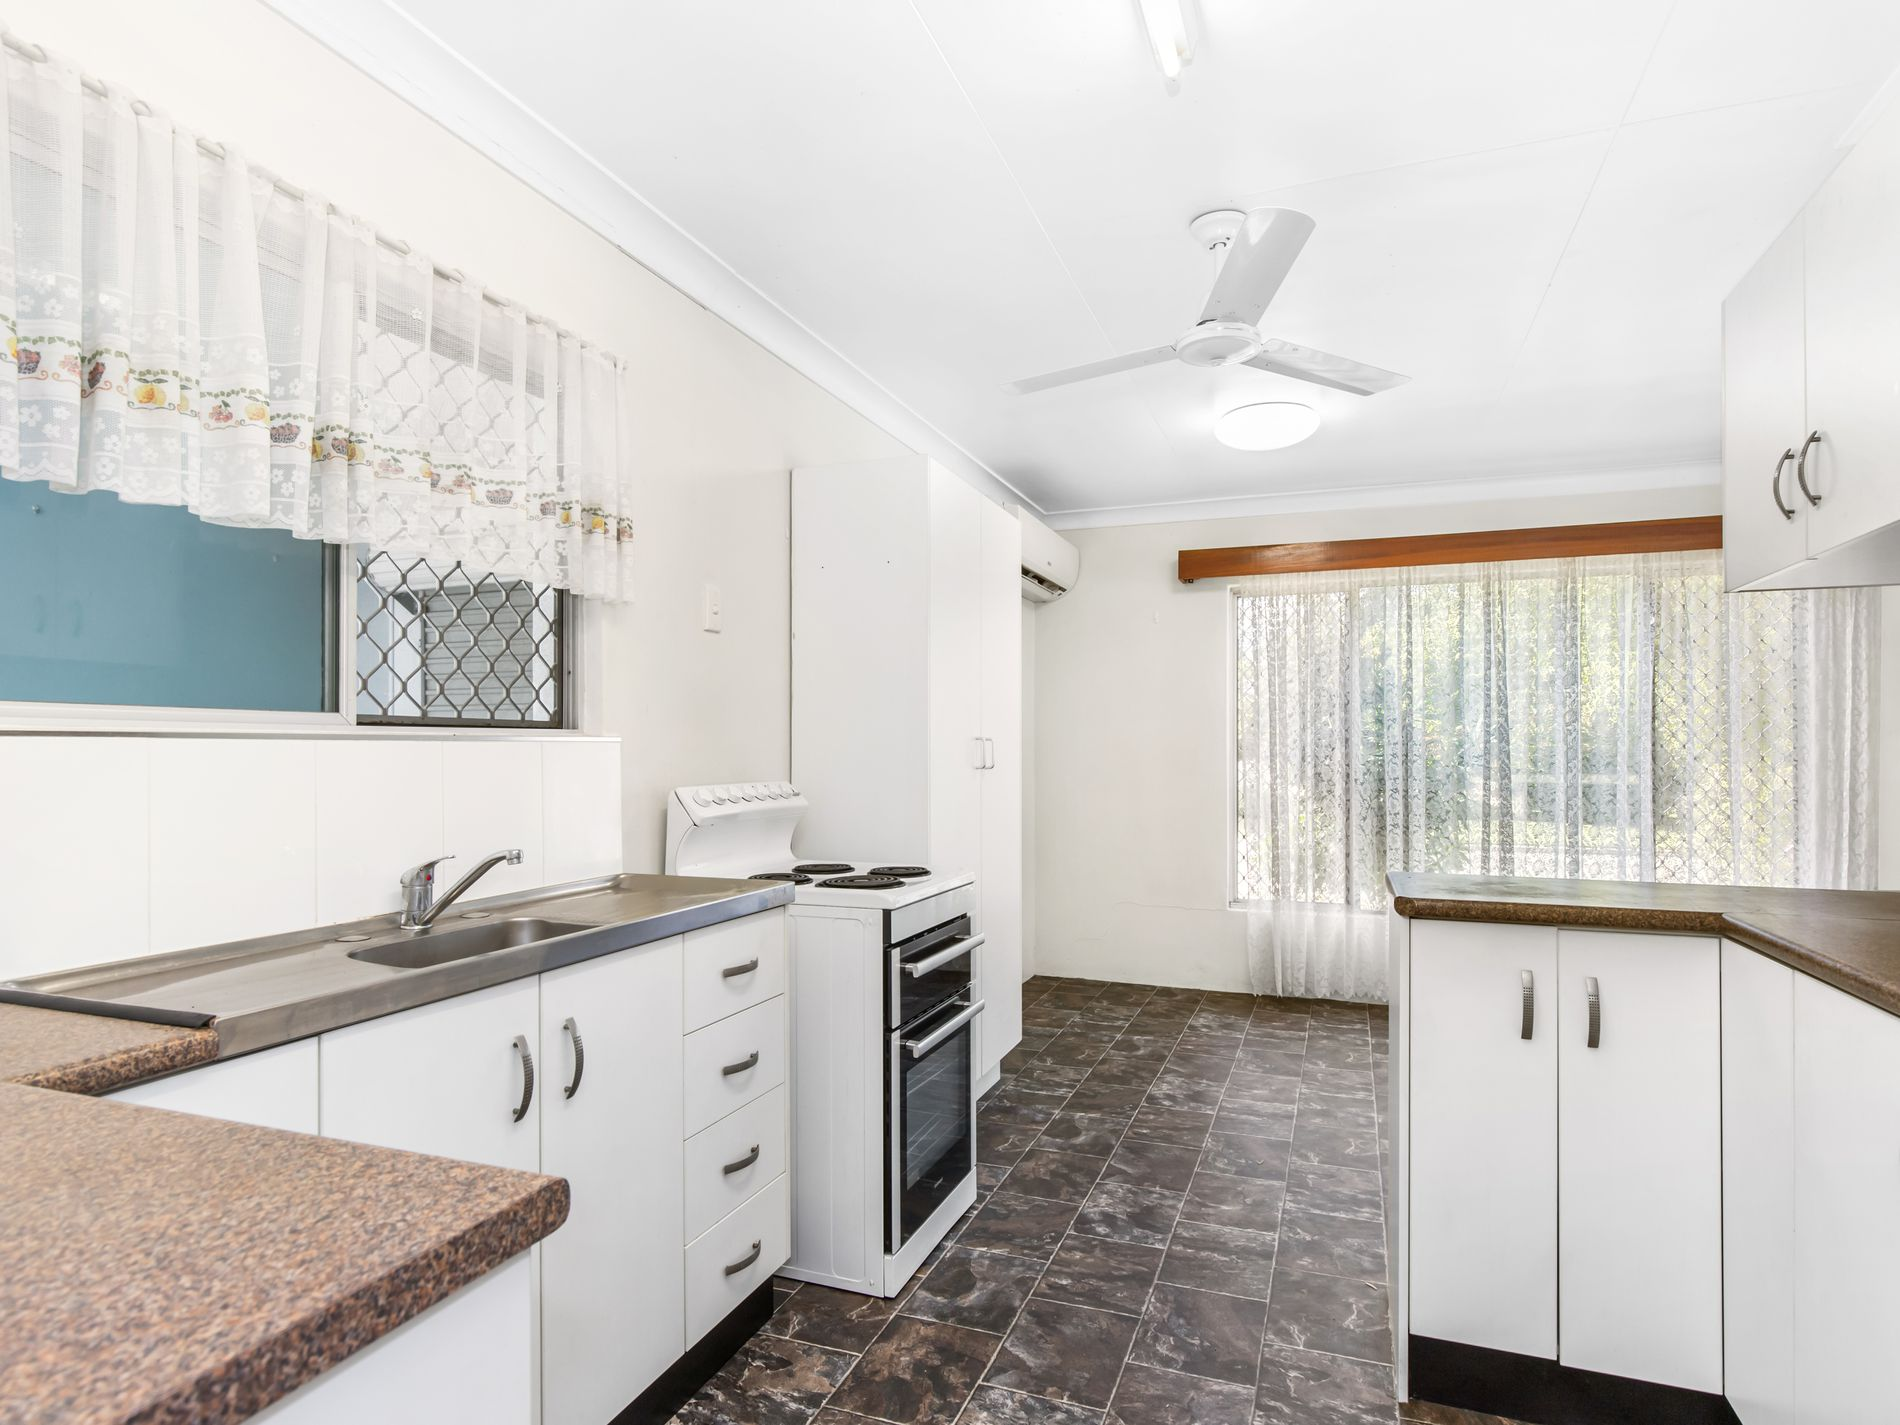 133 BERGIN ROAD, Cranbrook